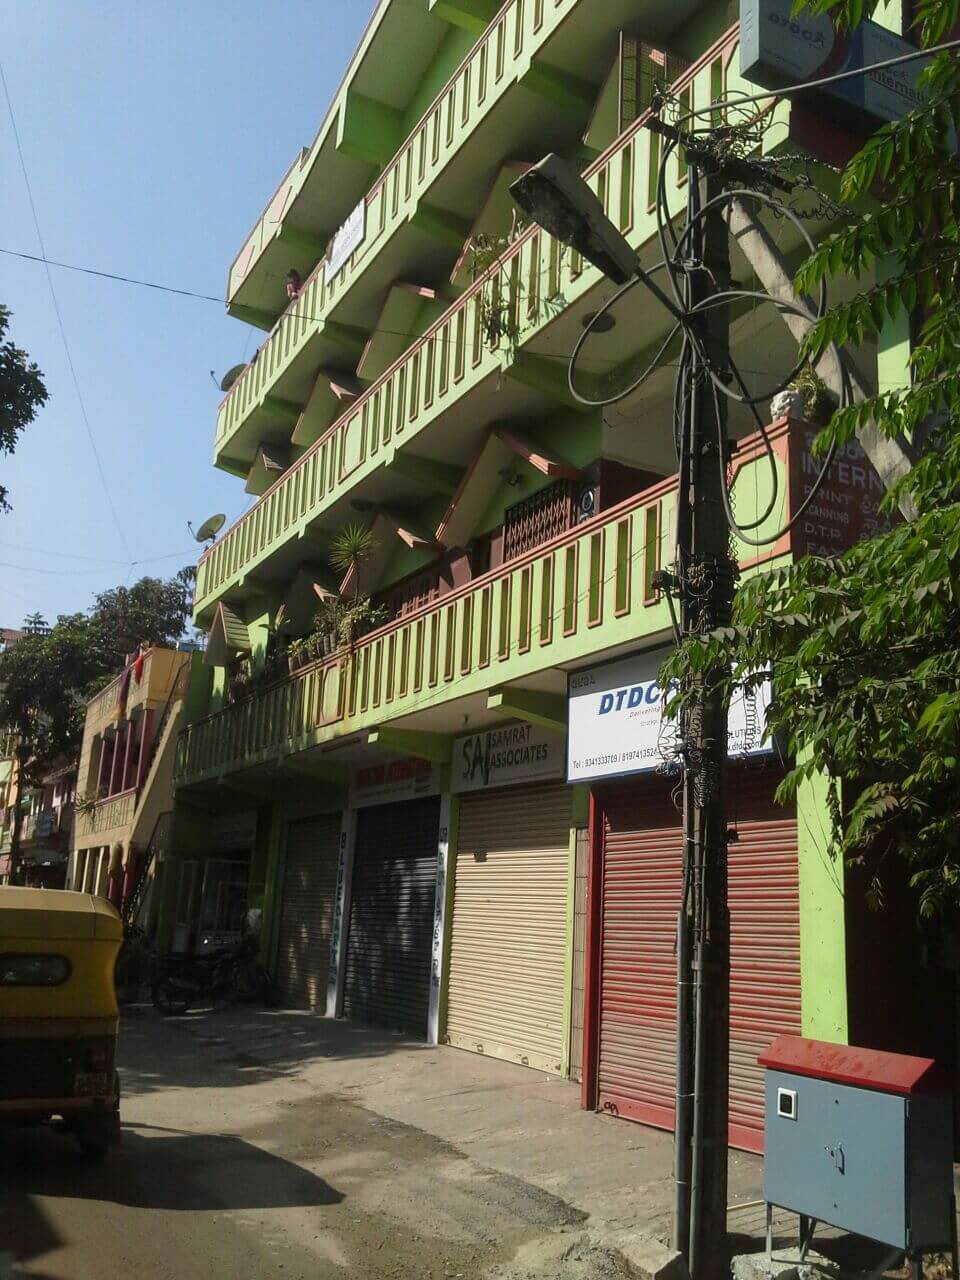 Duplex House or Commercial purpose space for Rent in Nandini Layout.